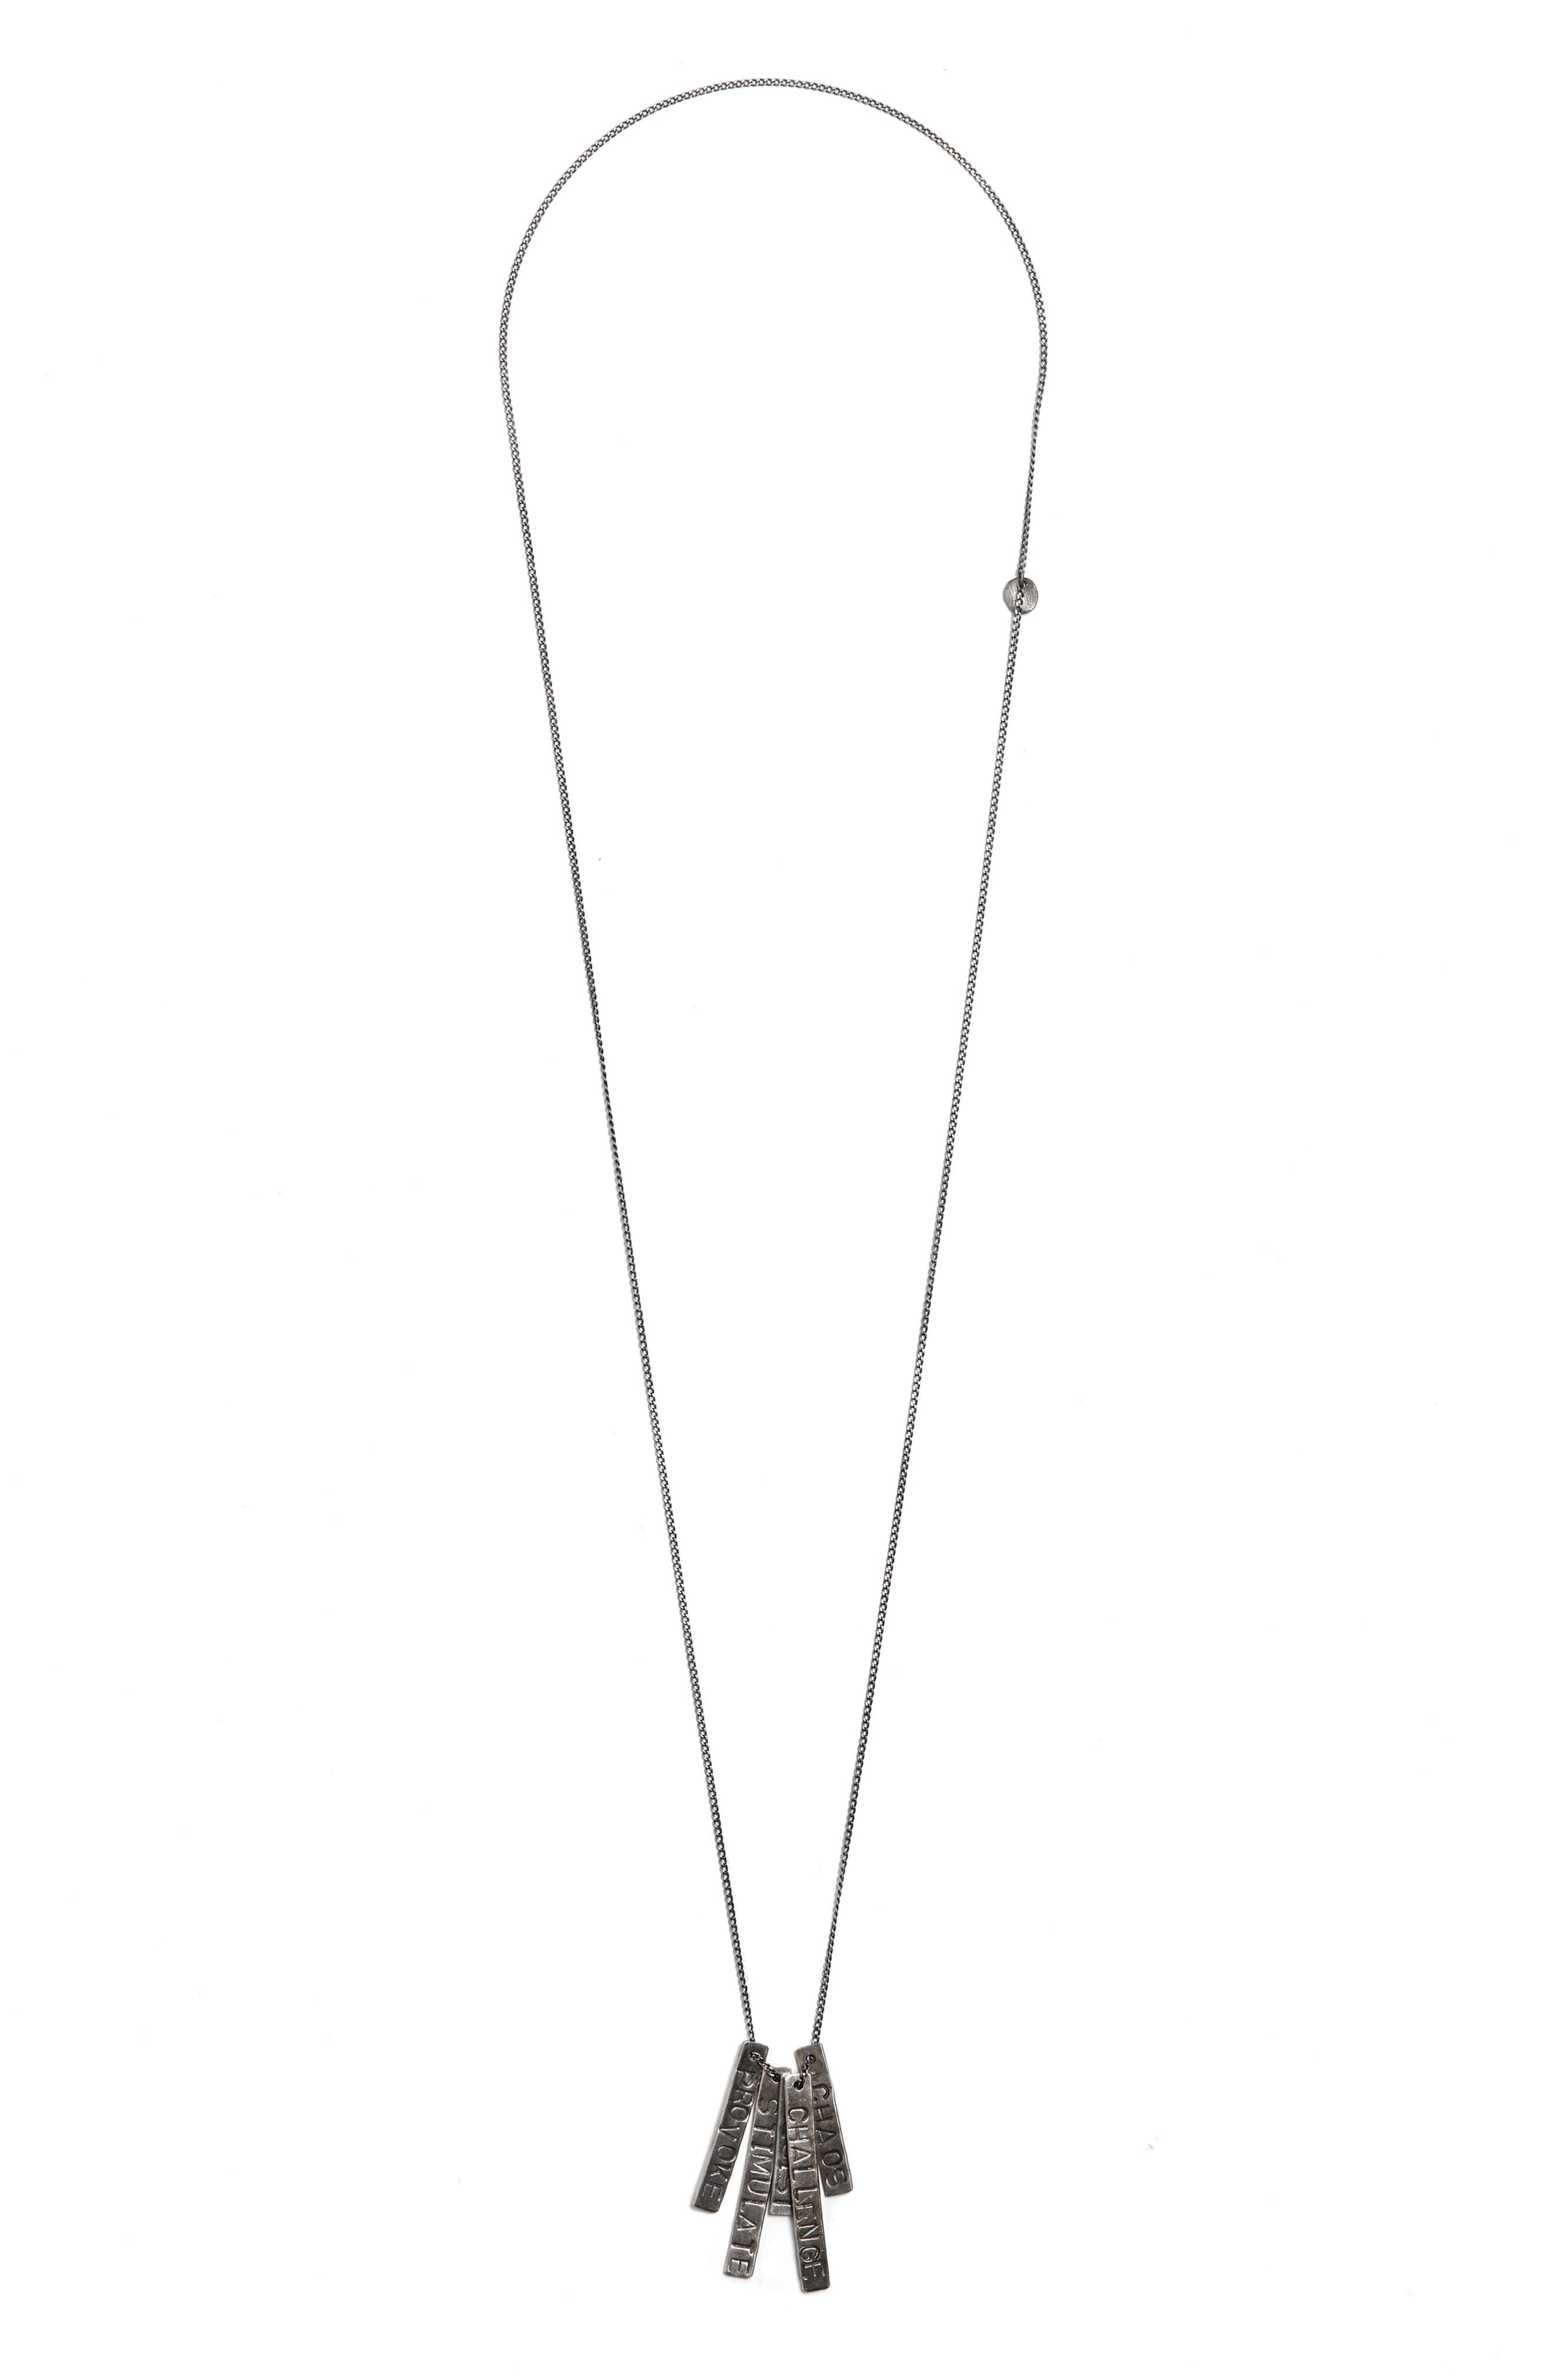 Provoke/Stimulate ID Tag Necklace,                             Main thumbnail 1, color,                             SILVER